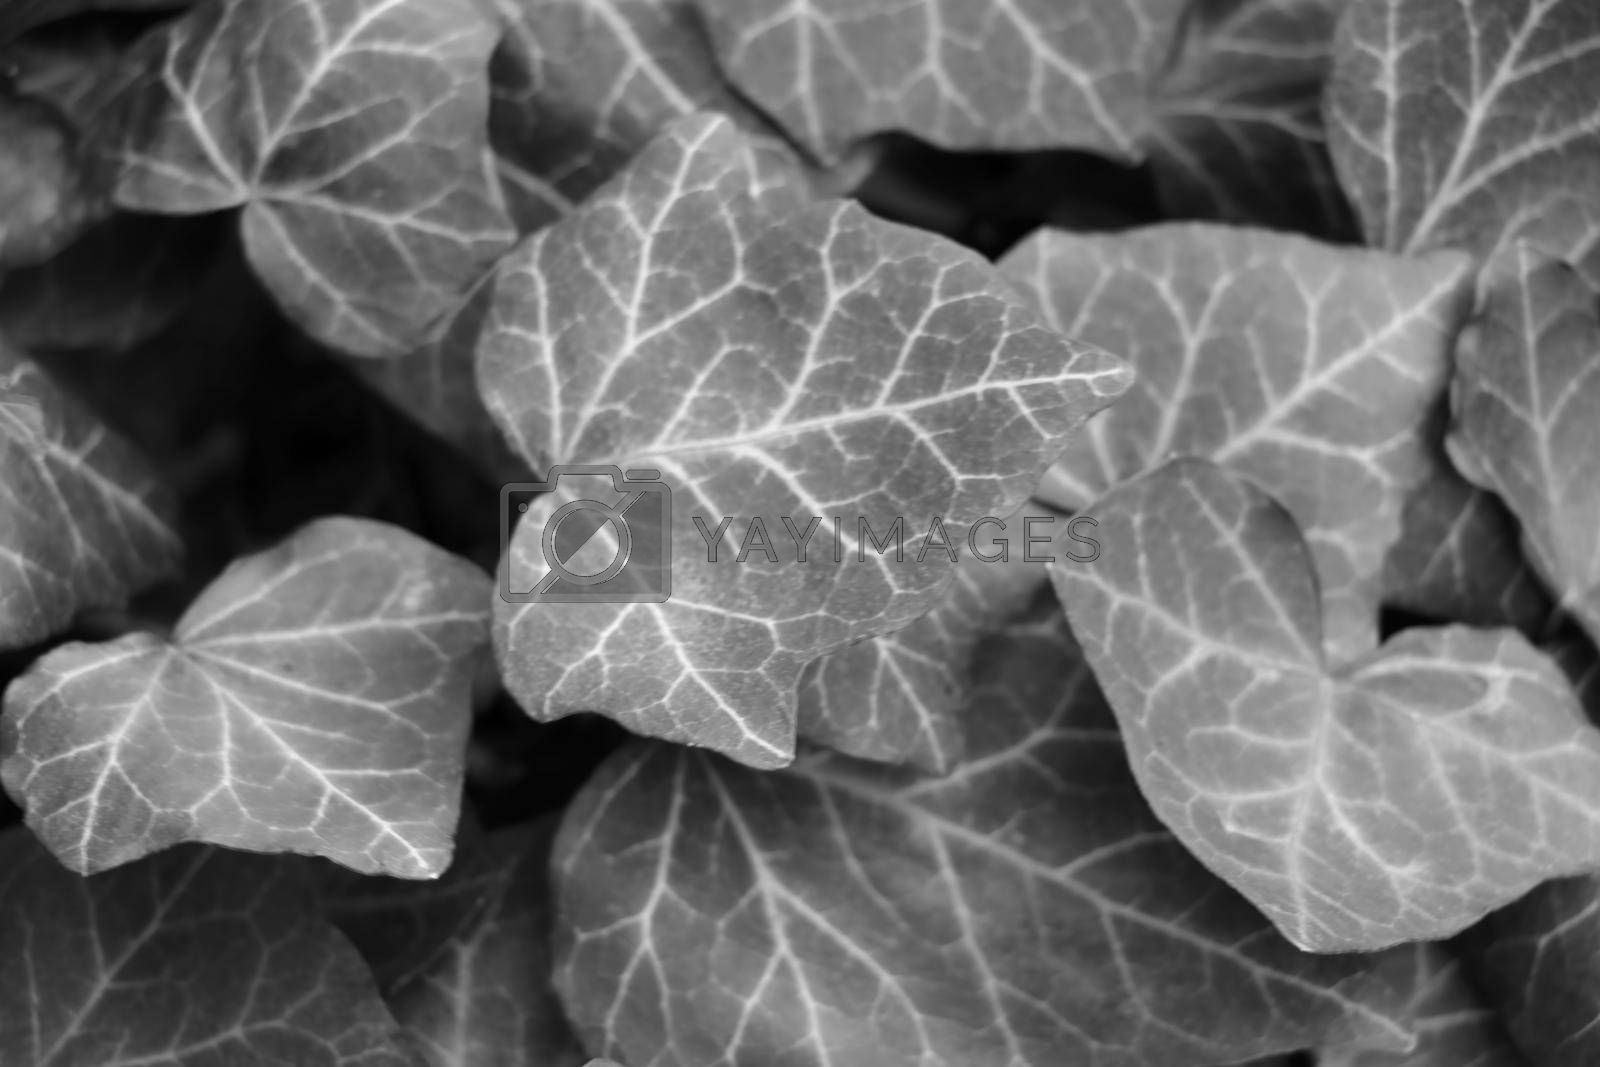 Royalty free image of Blurred background, out of focus, black and white photo, texture of young leaves of a bush or flowers. by kip02kas